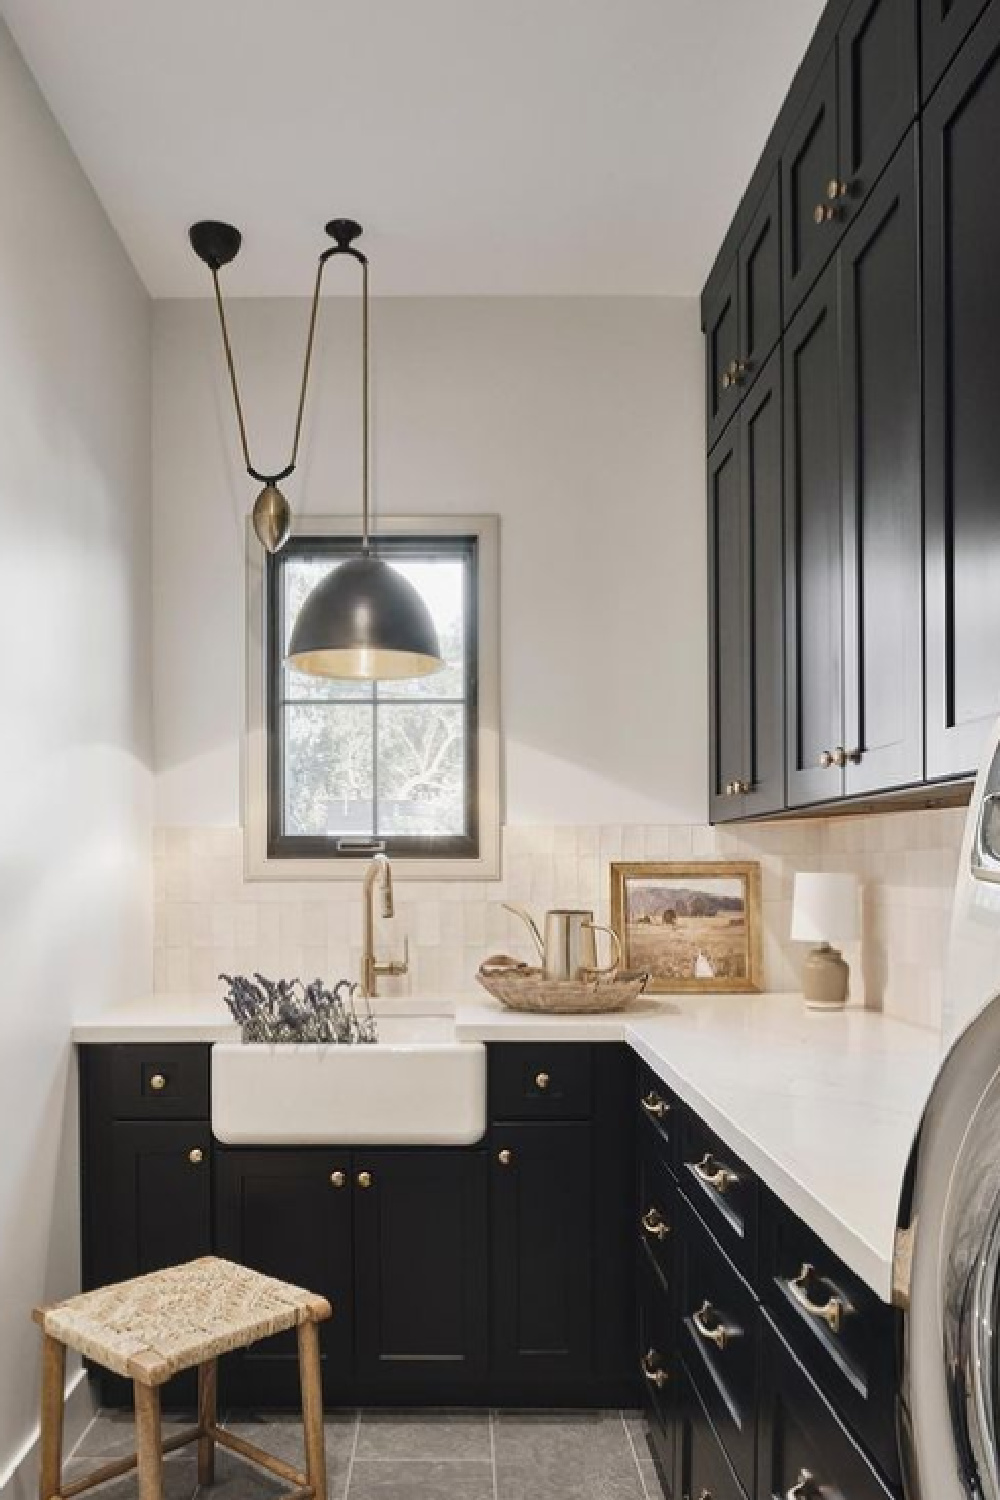 Beautiful black and white laundry room with black cabinets, Zellige tile backsplash pendant over farm sink, and white counters - @_rafterhouse_ #laundryrooms #blackcabinets